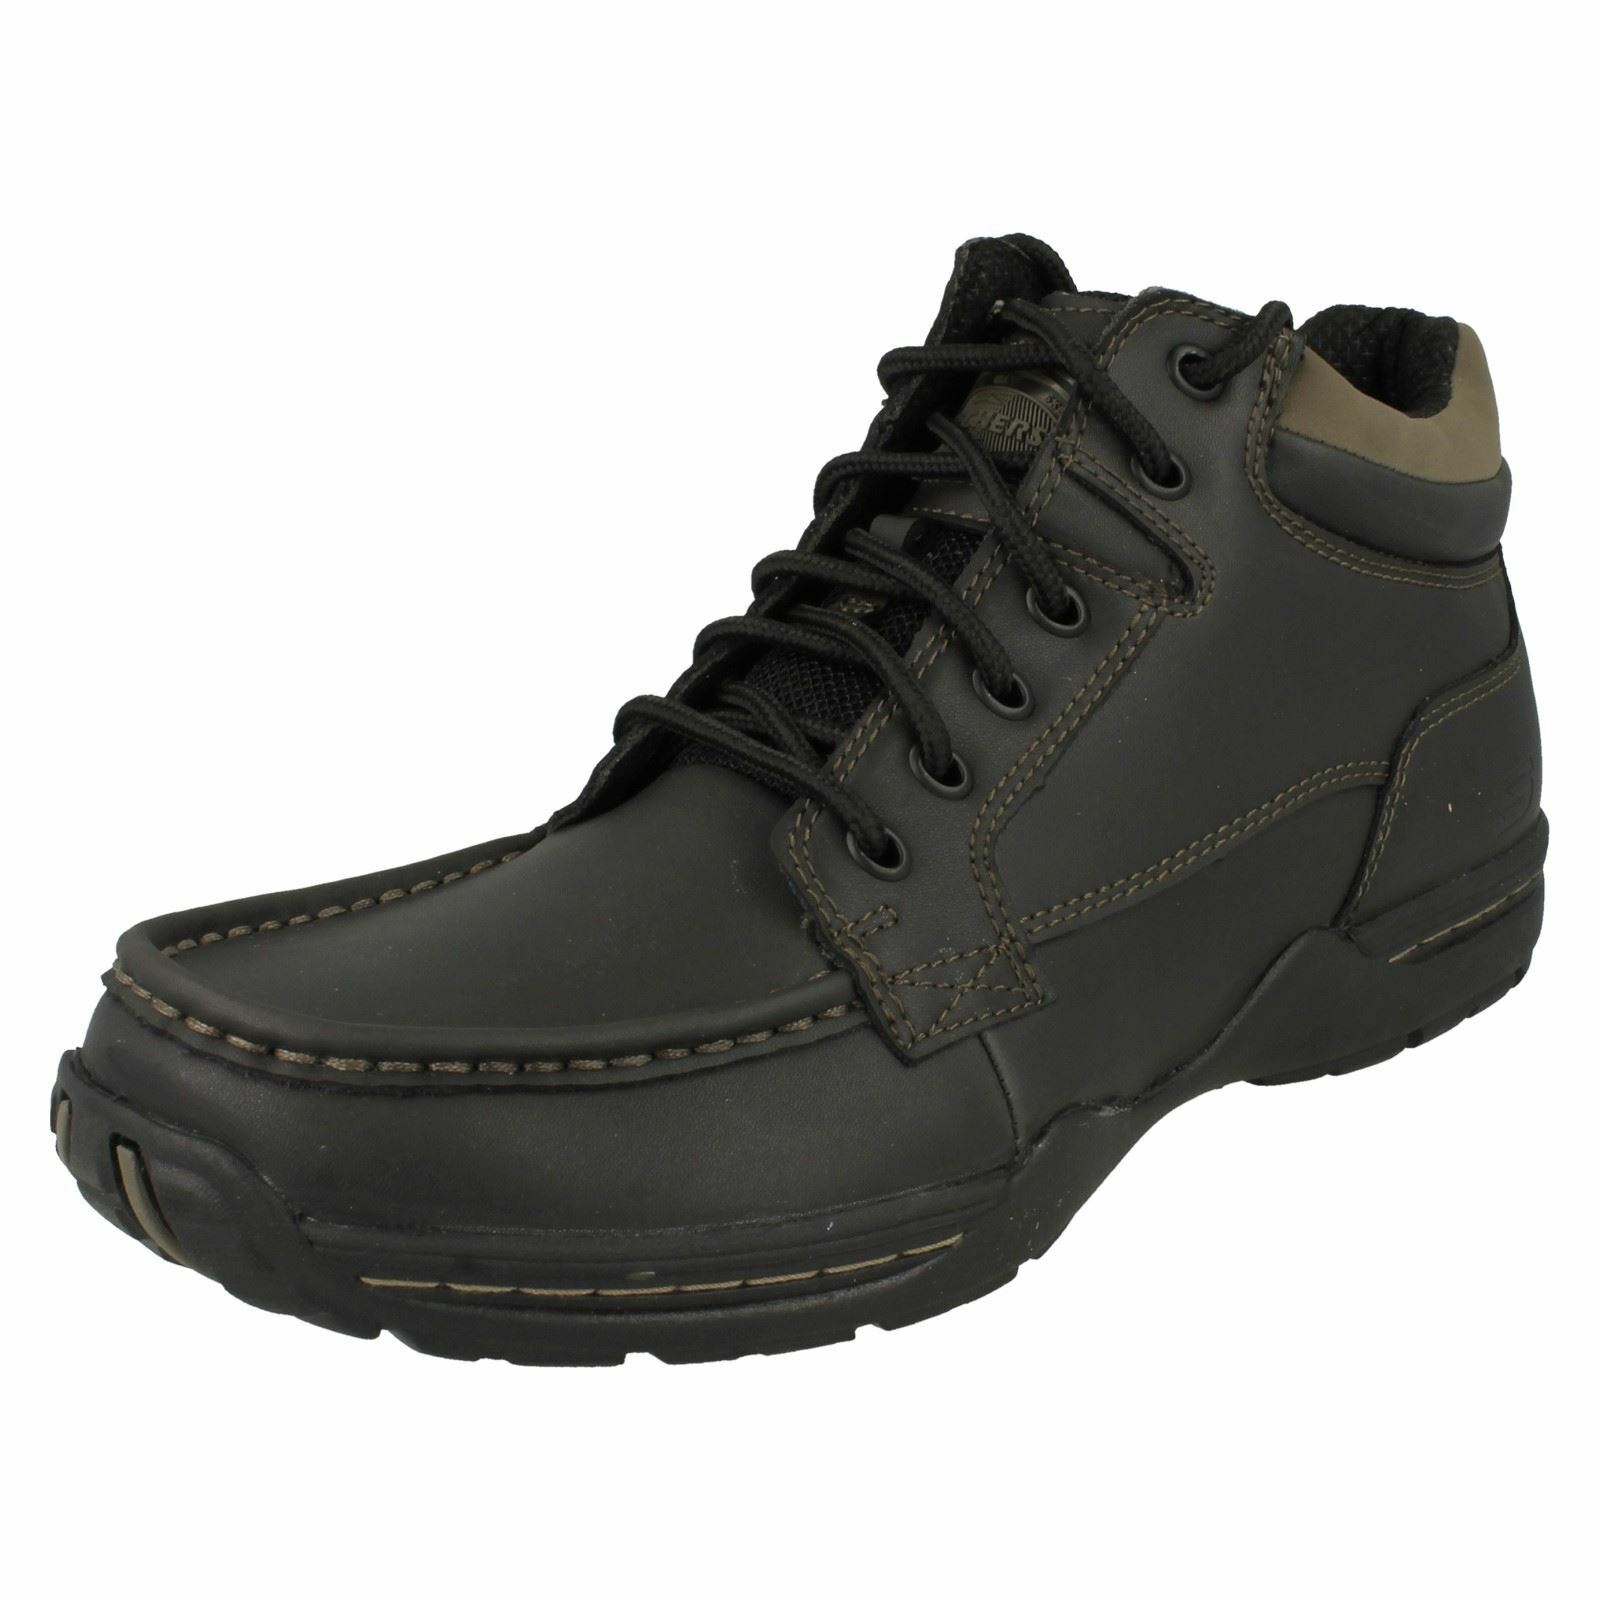 Mens Skechers Casual Lace Up Ankle Boots 'Deside'